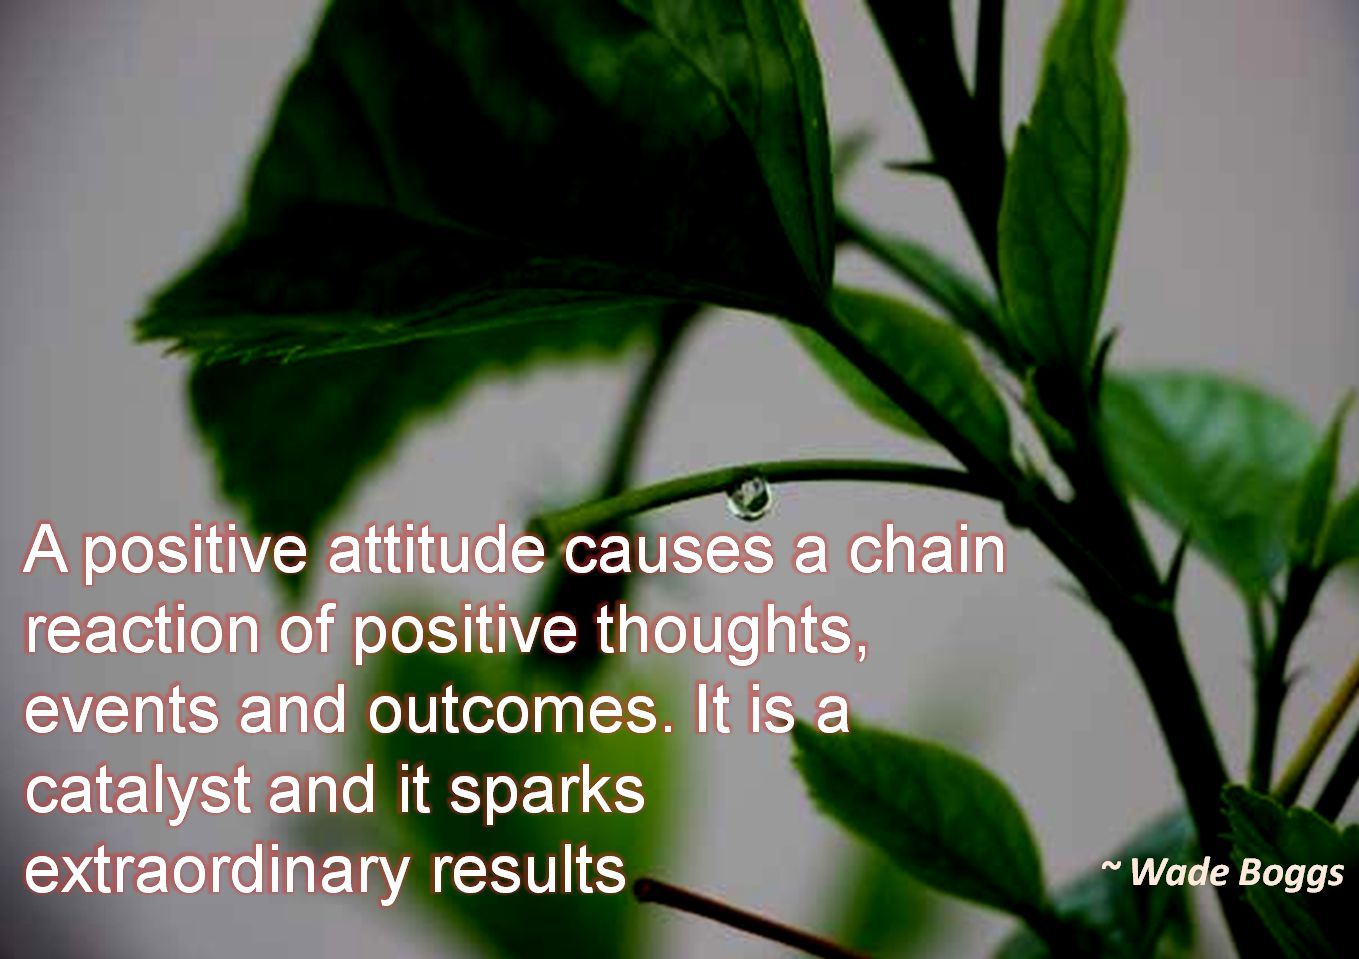 Wade Boggs- A positive attitude causes a chain reaction of positive thoughts, events and outcomes. It is a catalyst and it sparks extraordinary results